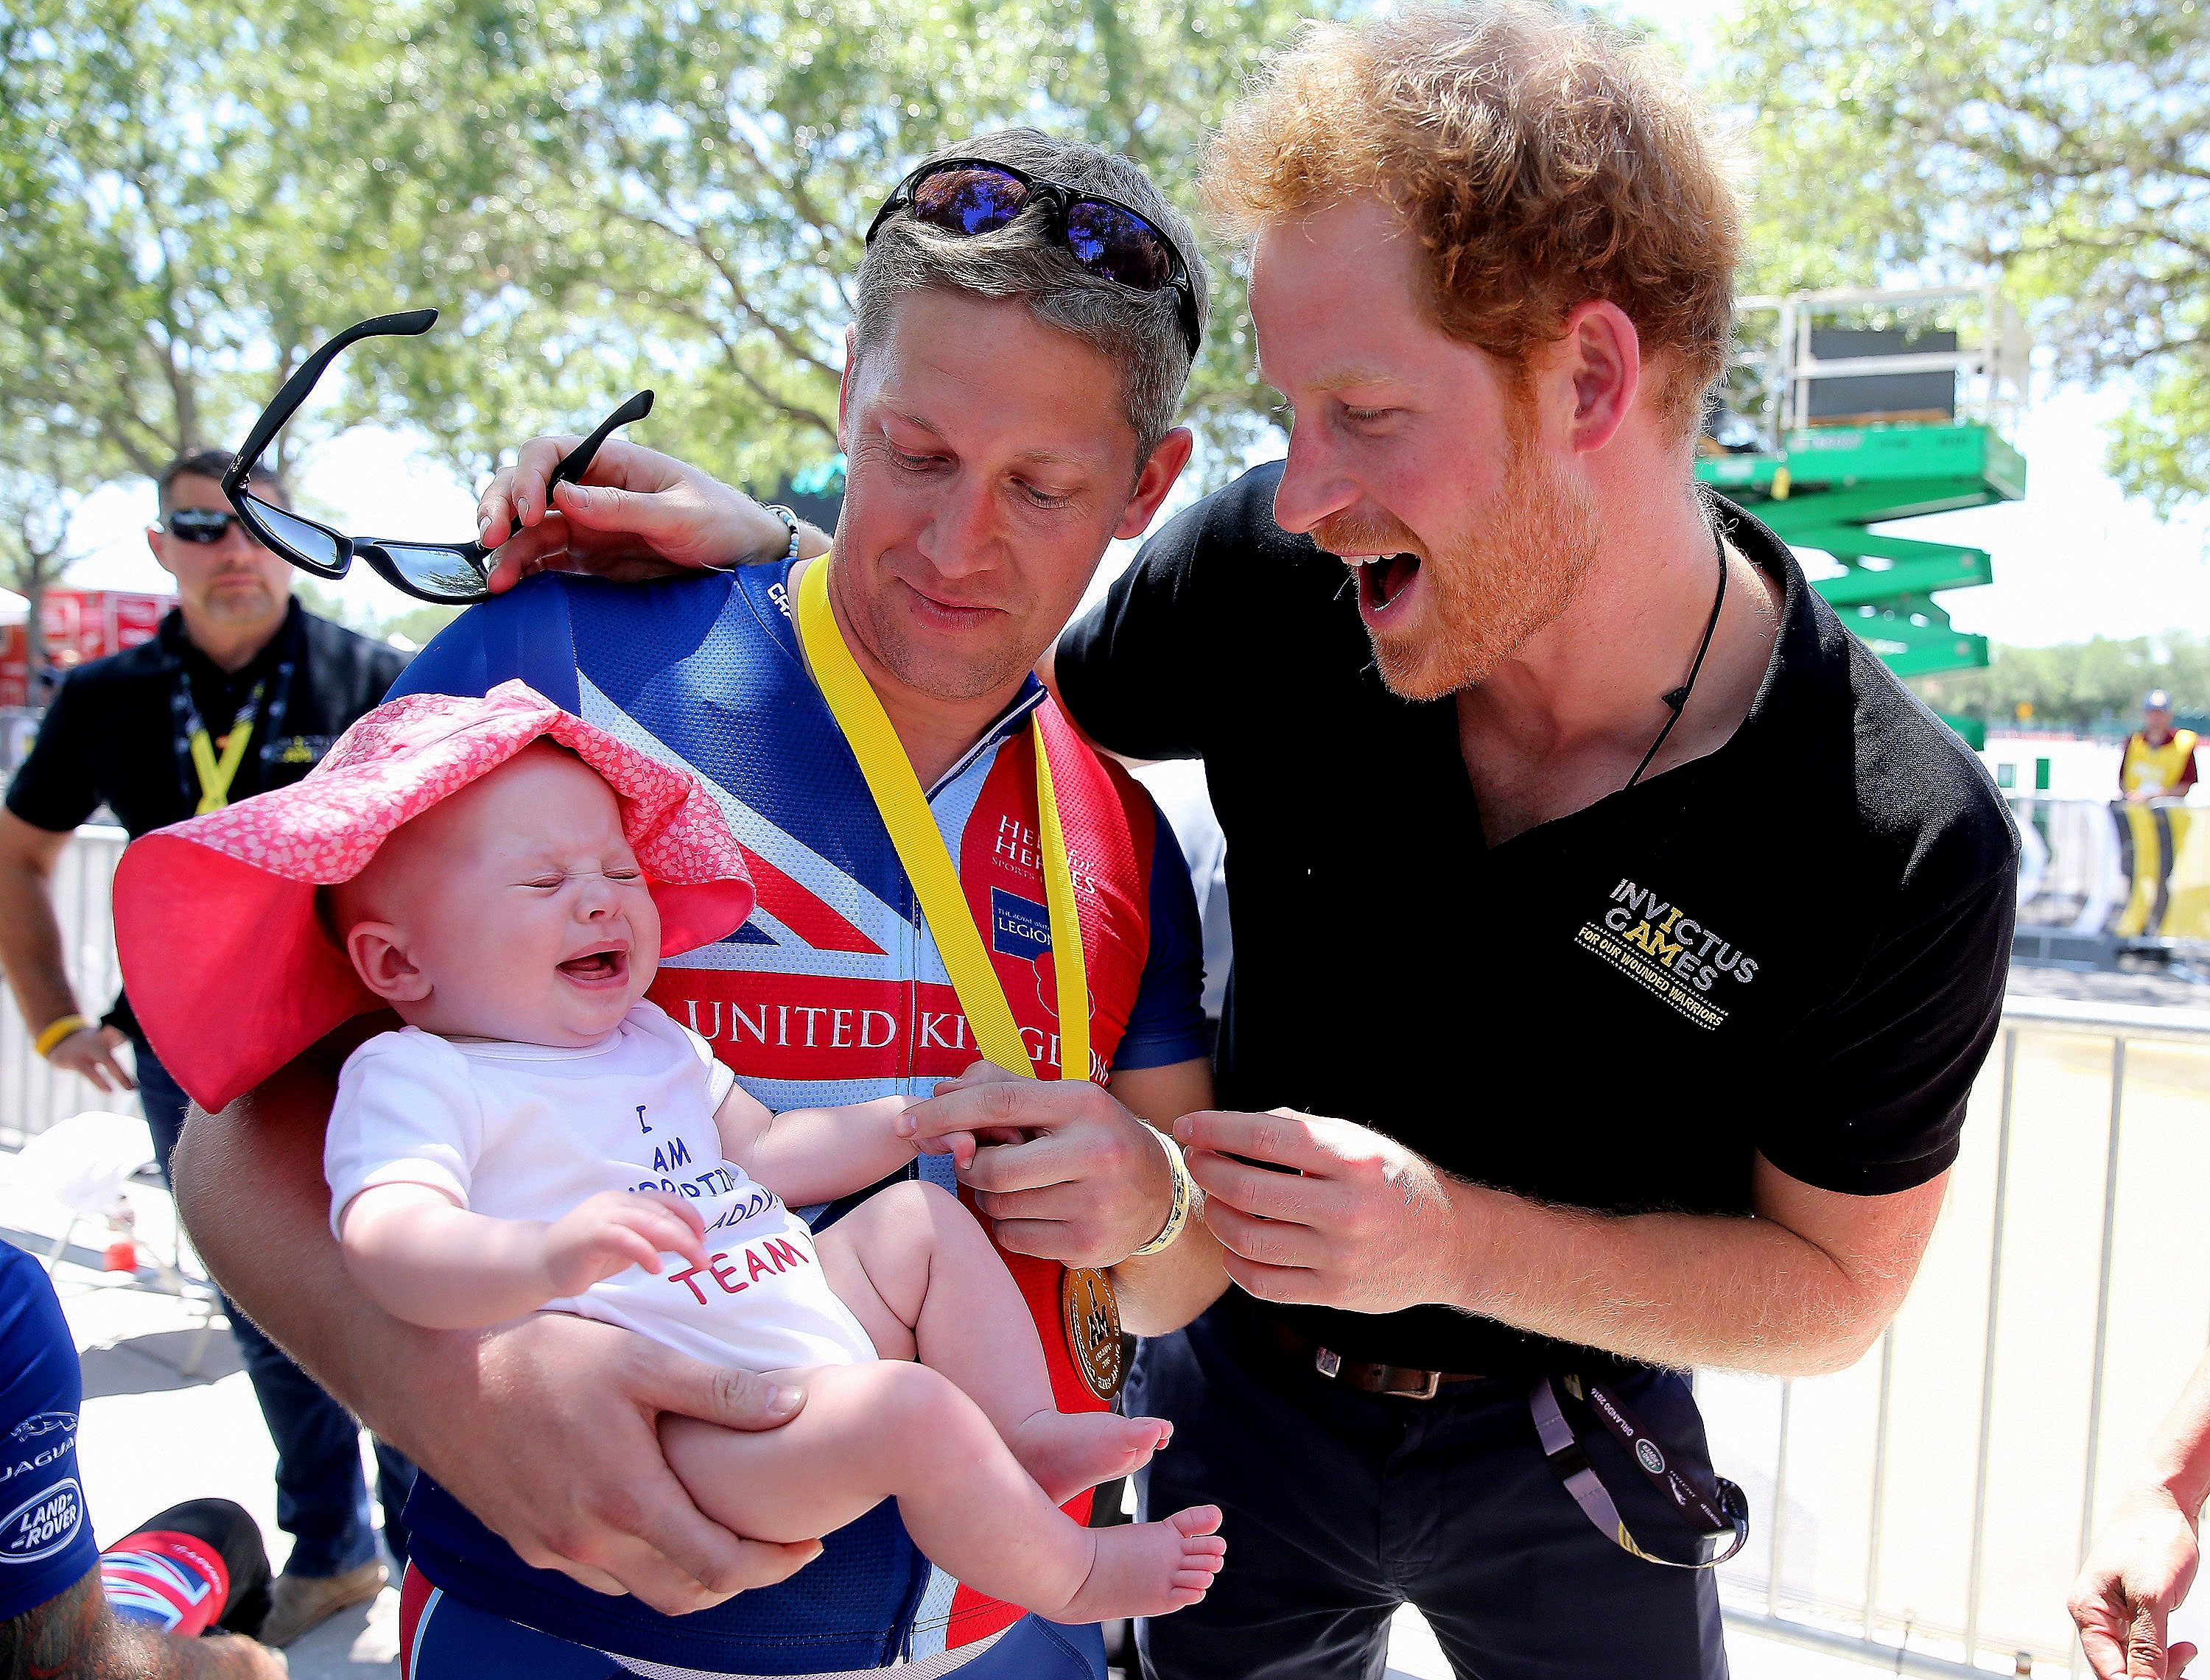 Prince Harry - British double gold winner in recumbent cycling Rob Cromey-Hawke and his daughter Pippa met Prince Harry in May 2016 at the Invictus Games road cycling event in Orlando.